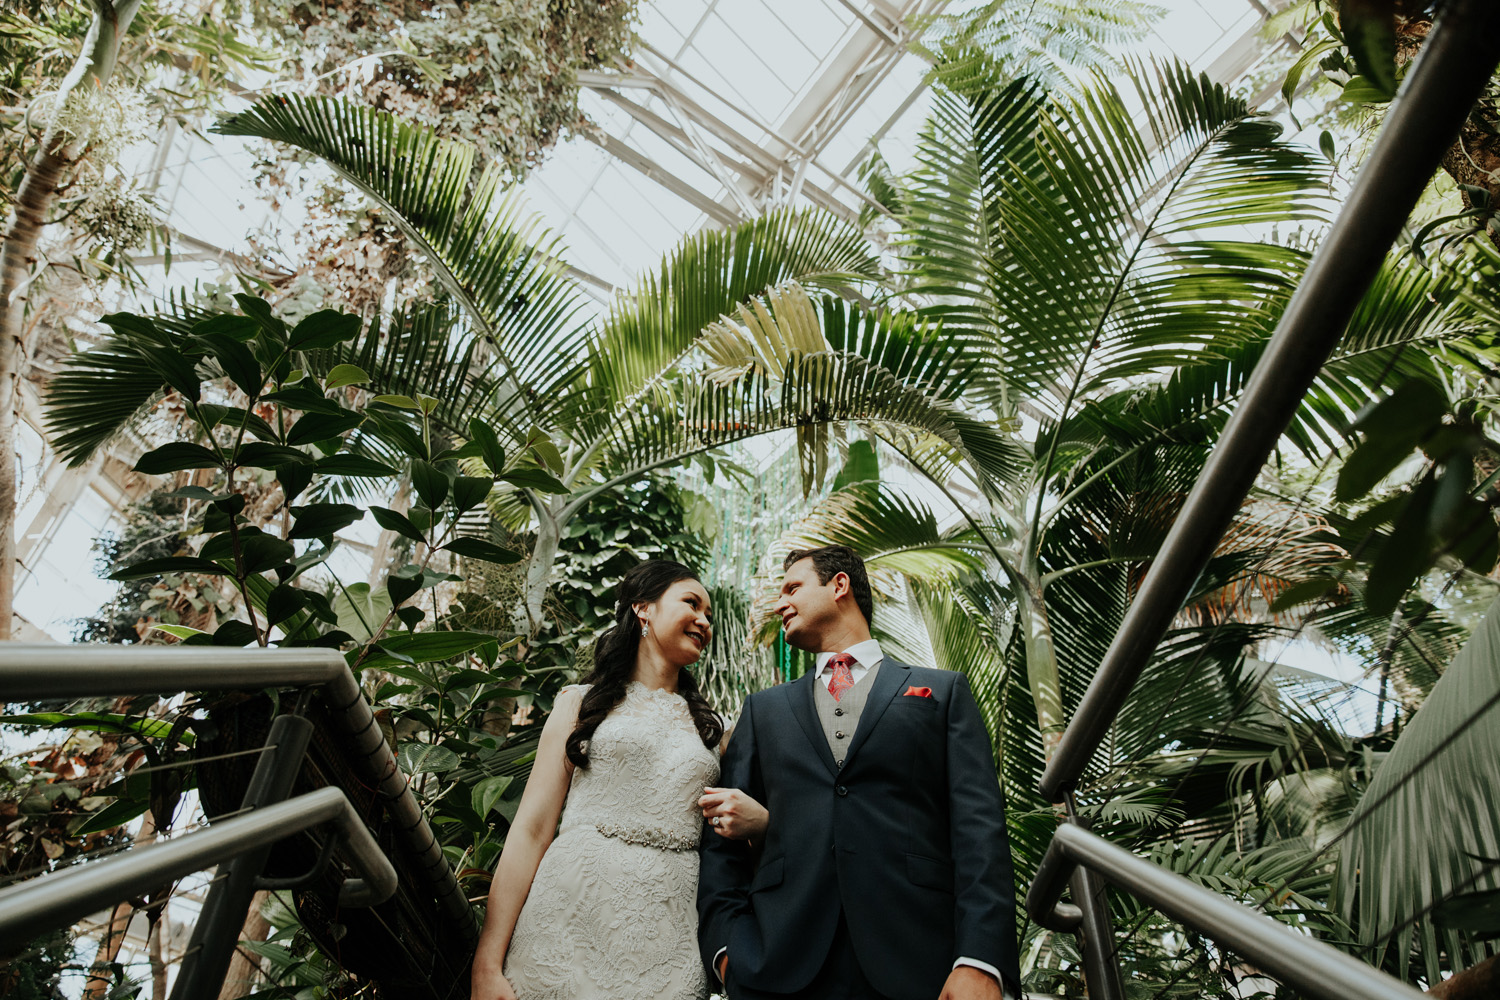 atlanta wedding photographers destination elopement photographer engagement photography atlanta botanical gardens_1019.jpg